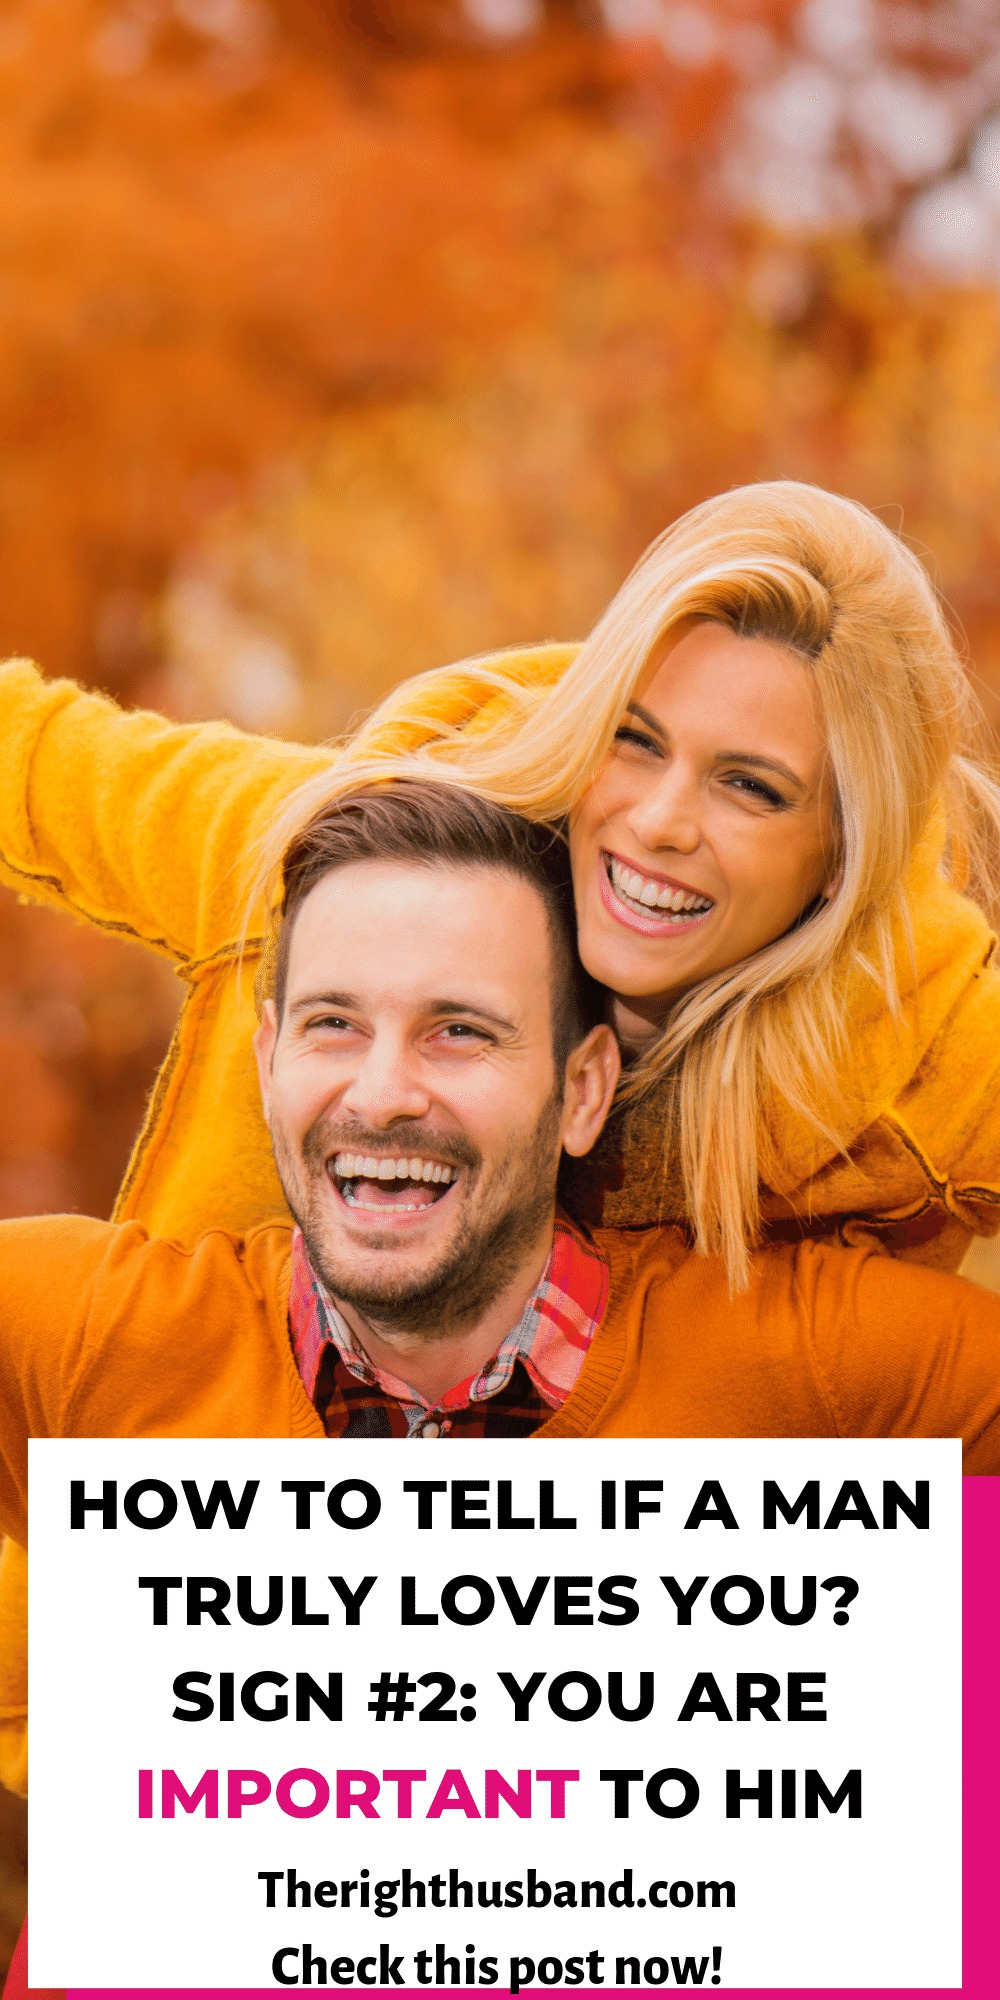 how to tell if a man loves you 1 (2)